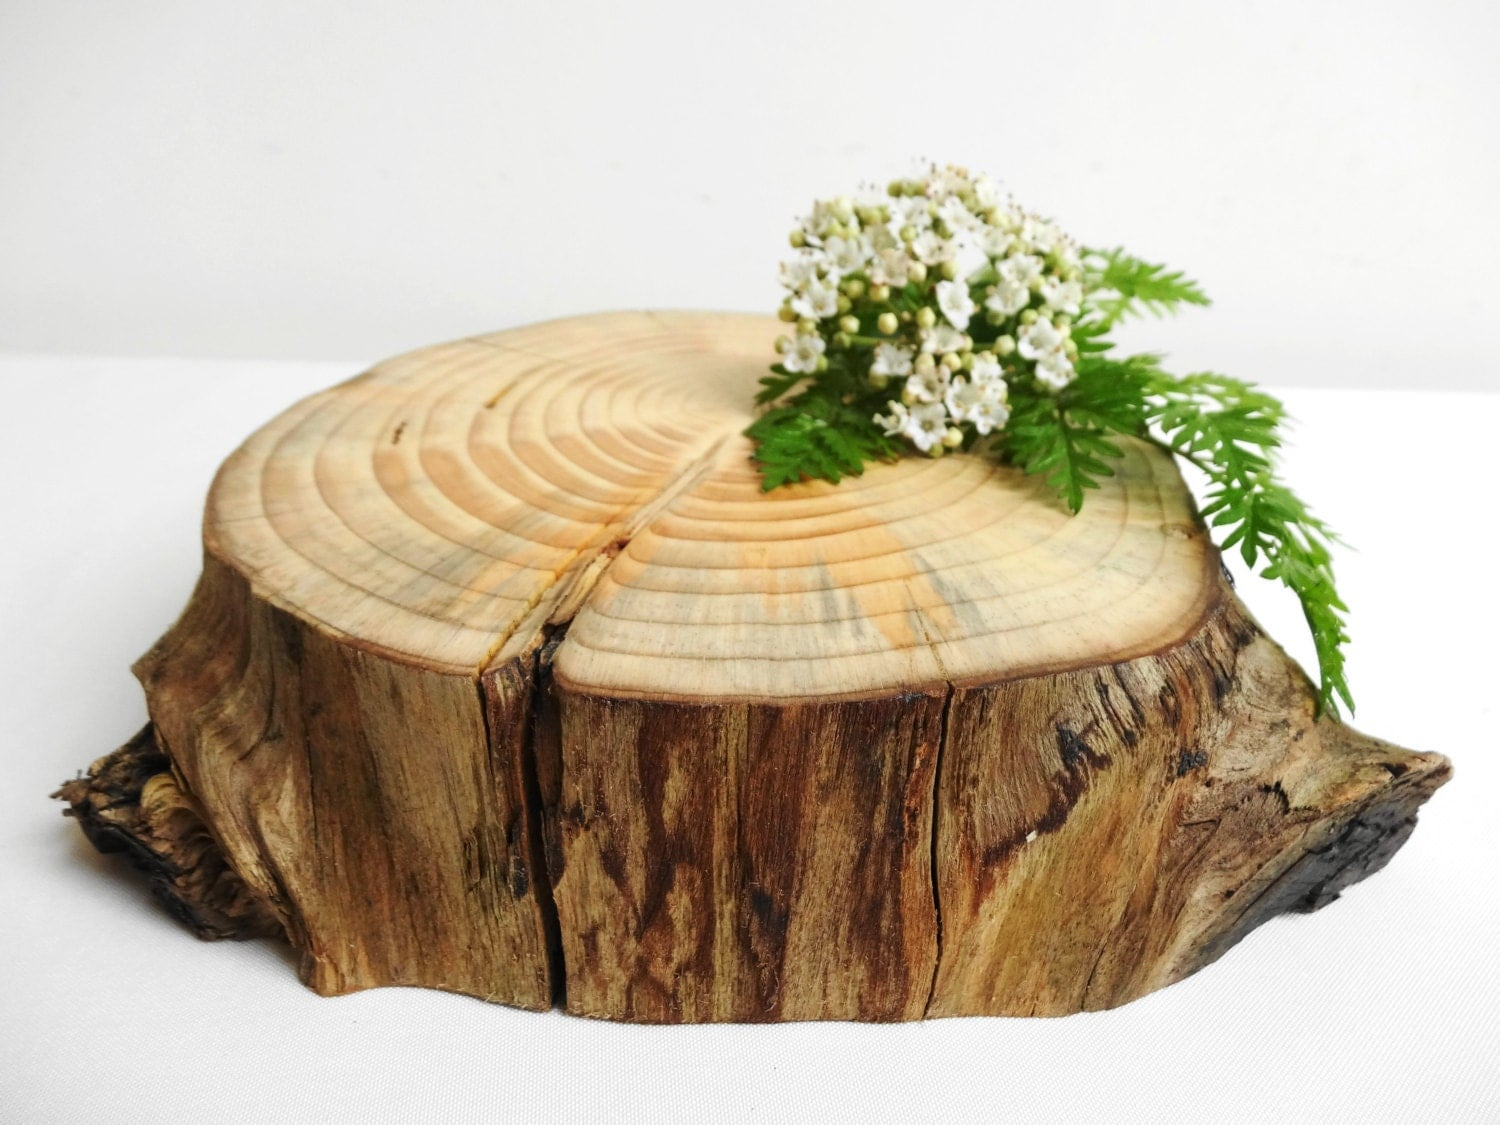 66 5 tree stump stump cake stand charger wood by. Black Bedroom Furniture Sets. Home Design Ideas